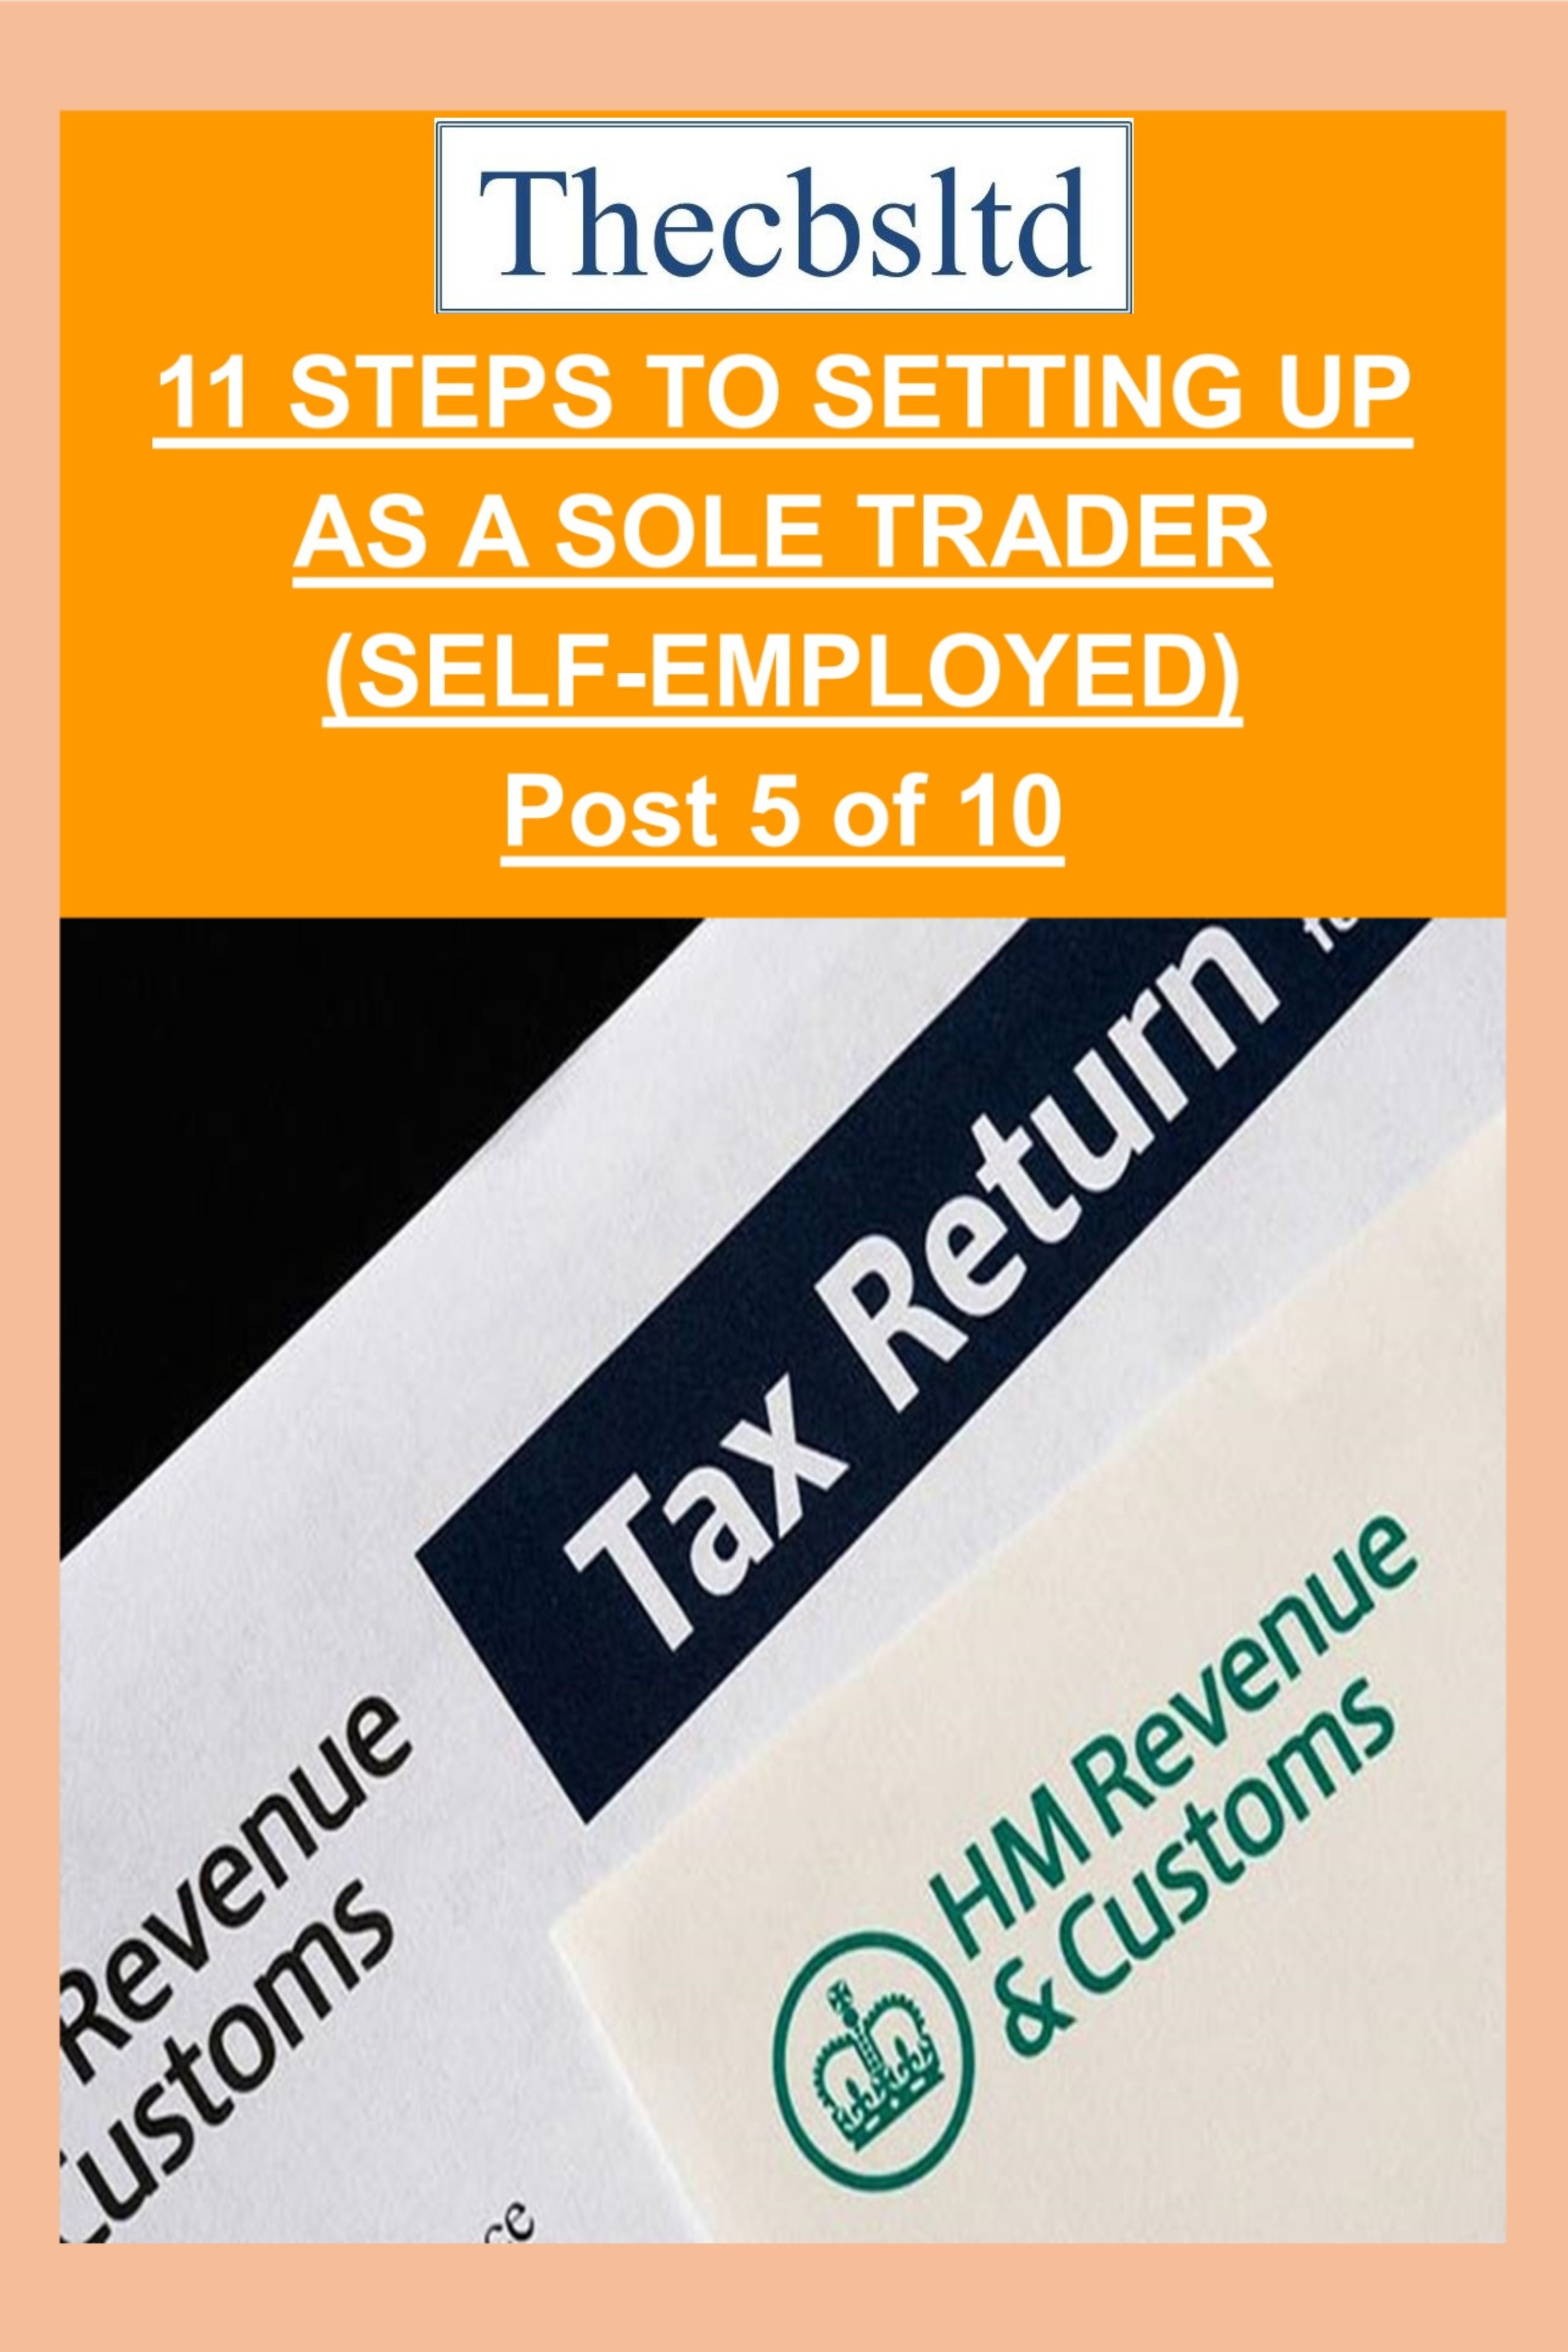 11 STEPS TO SETTING UP AS A SOLE TRADER (SELFEMPLOYED